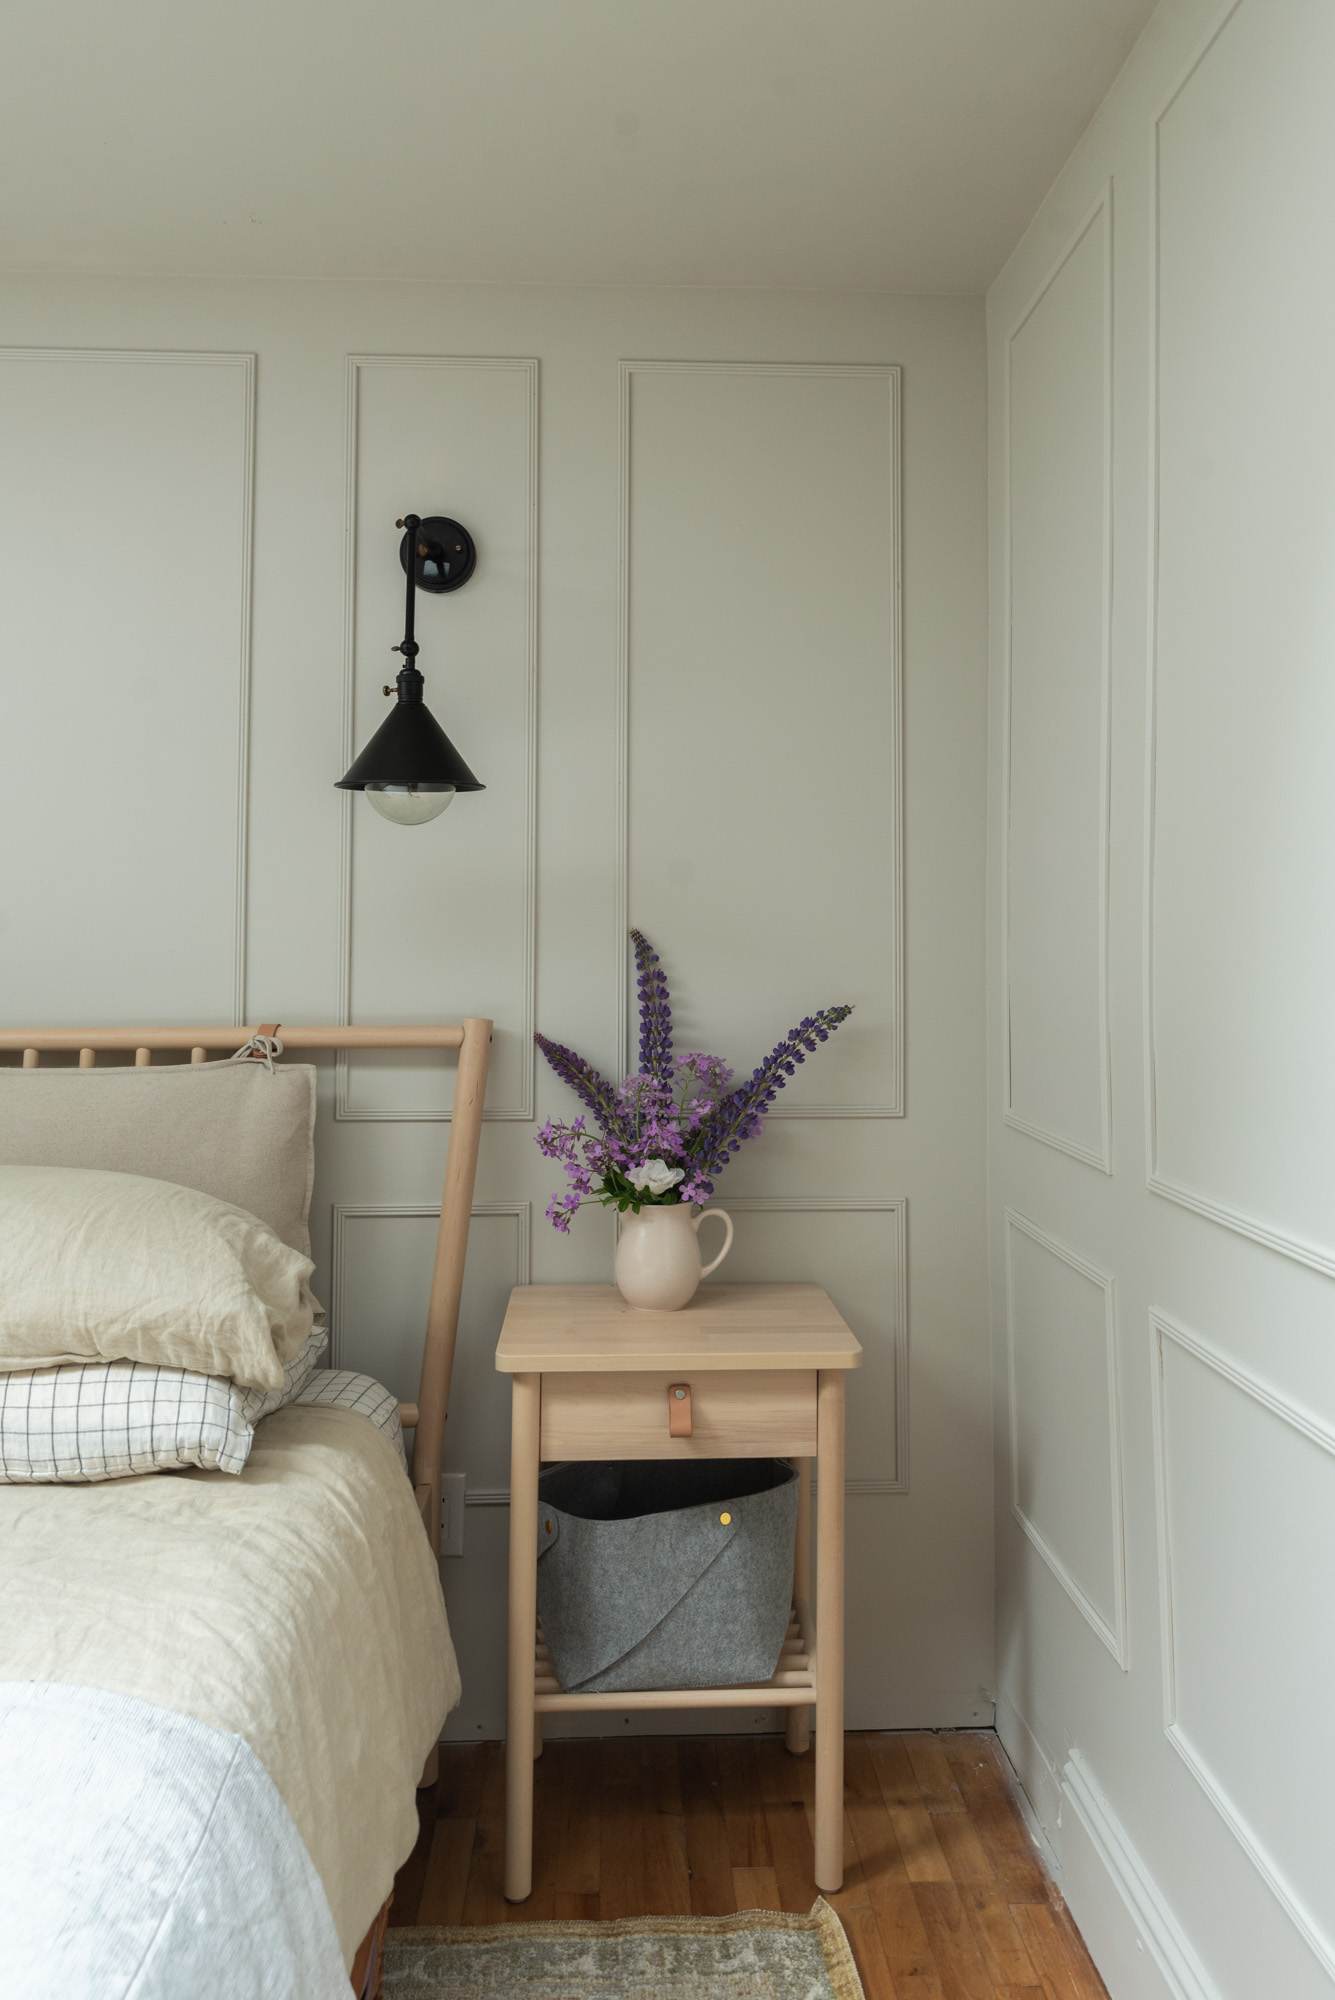 The Wild Decoelis | Our New Primary Bedroom | SW Agreeable Gray bedroom with Picture frame moulding, black sconces, raw wood bedrframe and natural linen bedding, CLJx loloi rug